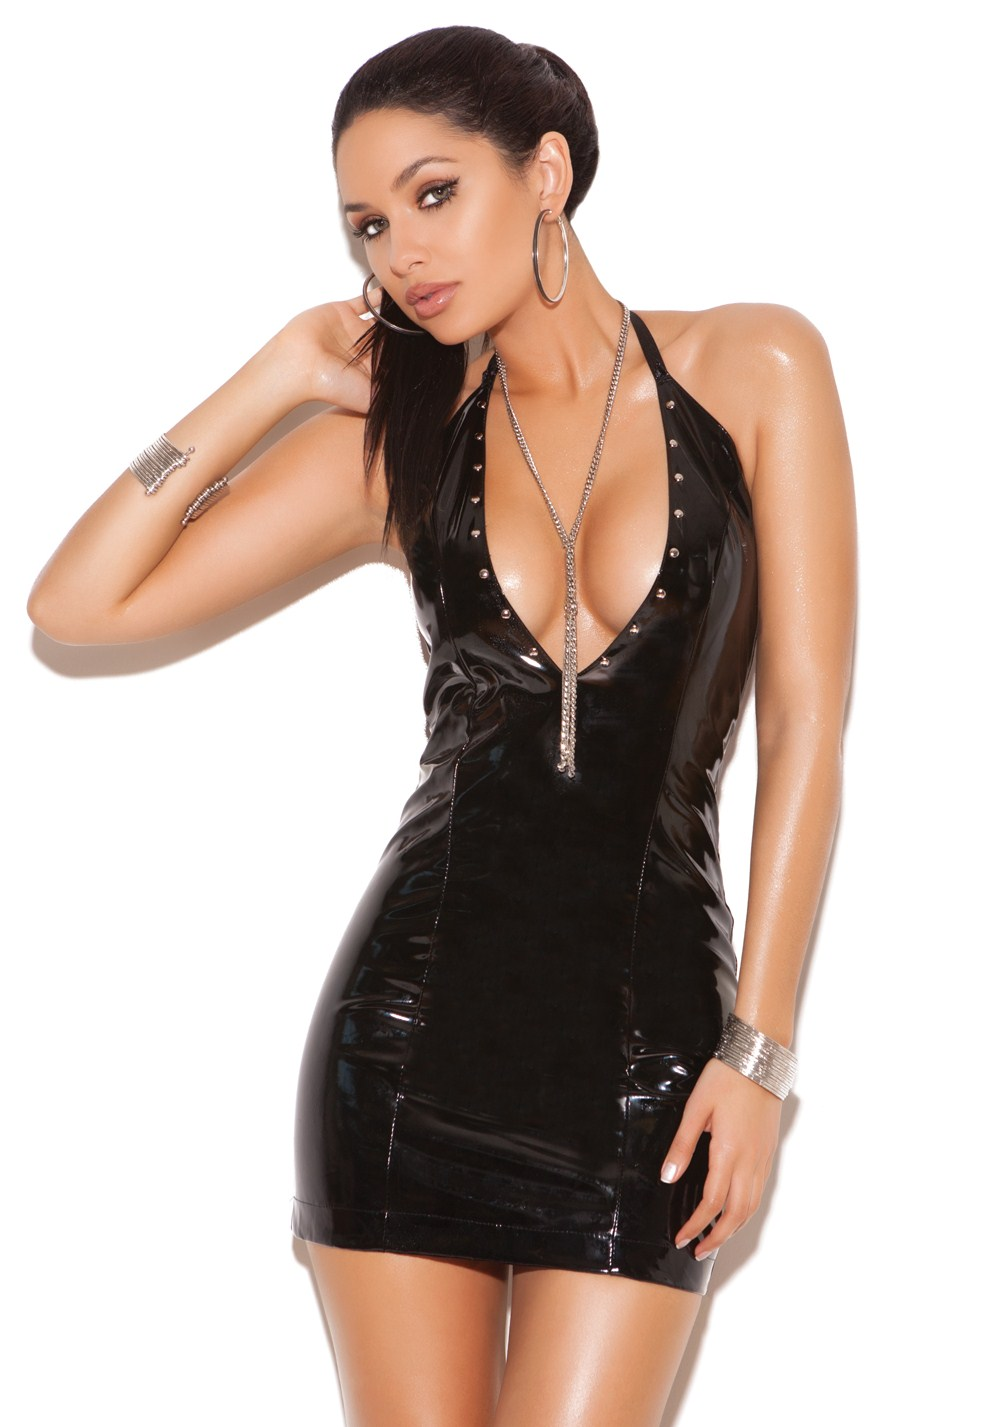 Exotic Lingerie Retailer Expands Leather Lingerie And